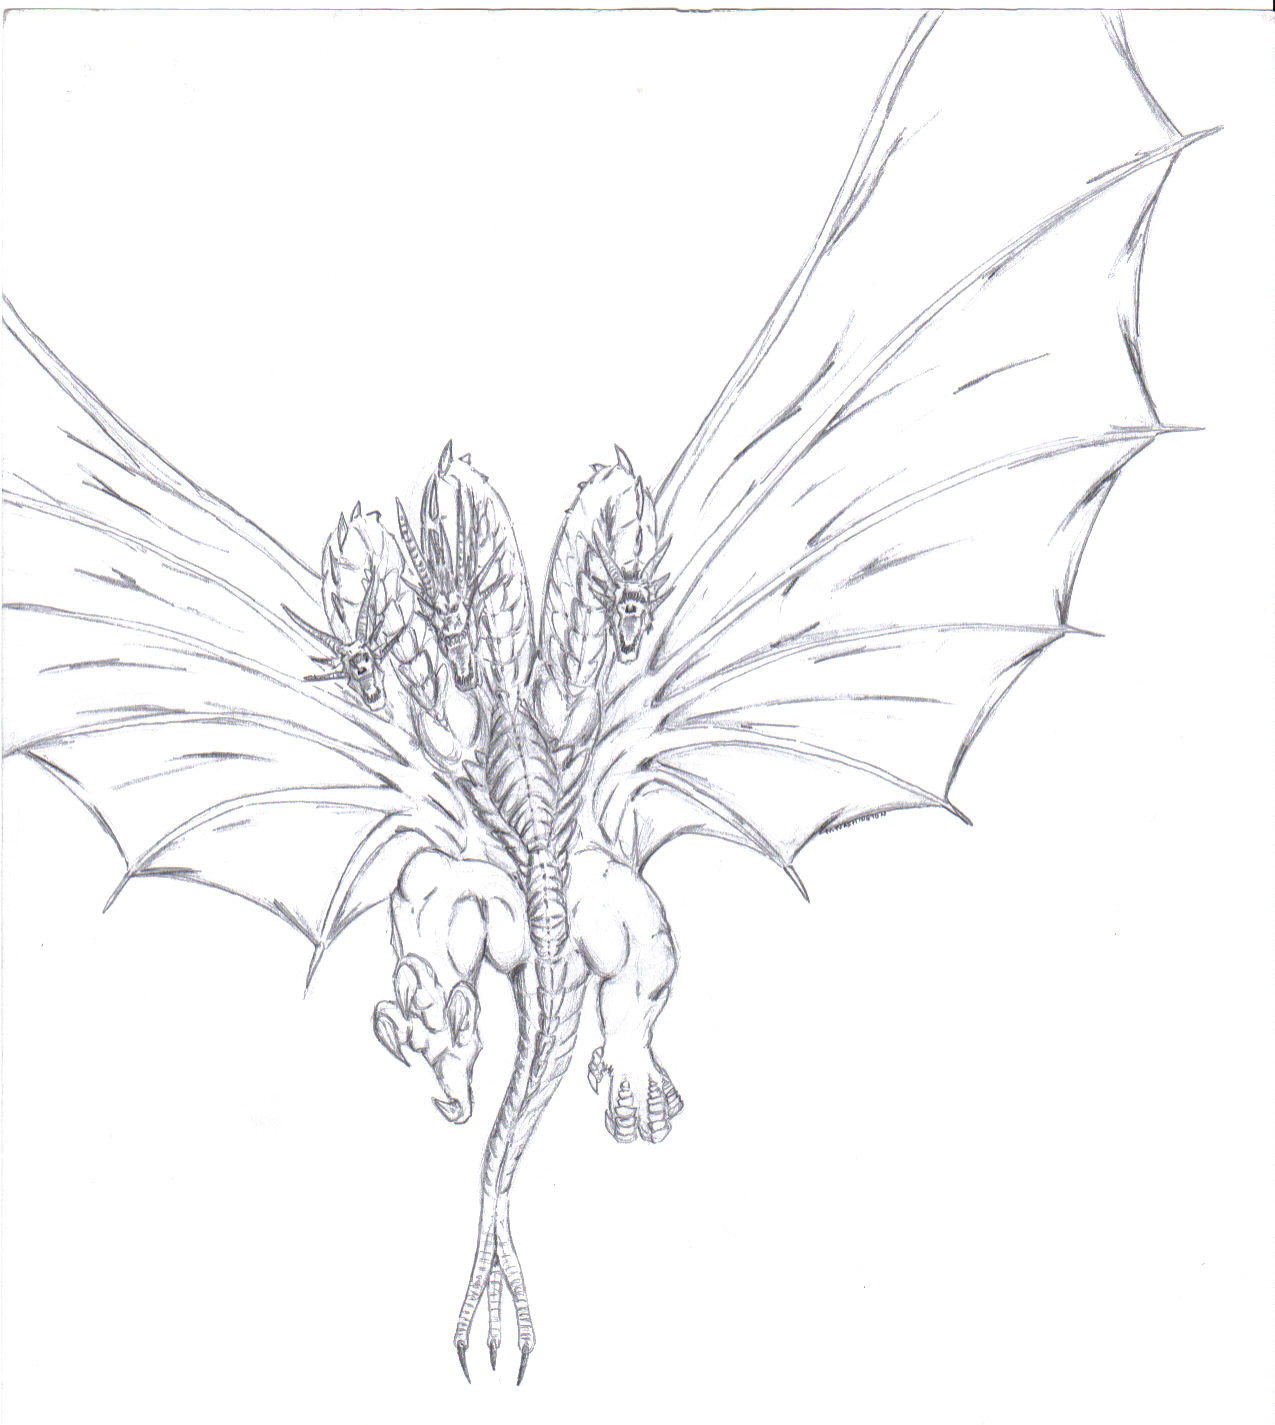 King Ghidorah by MikeDastardly on deviantART